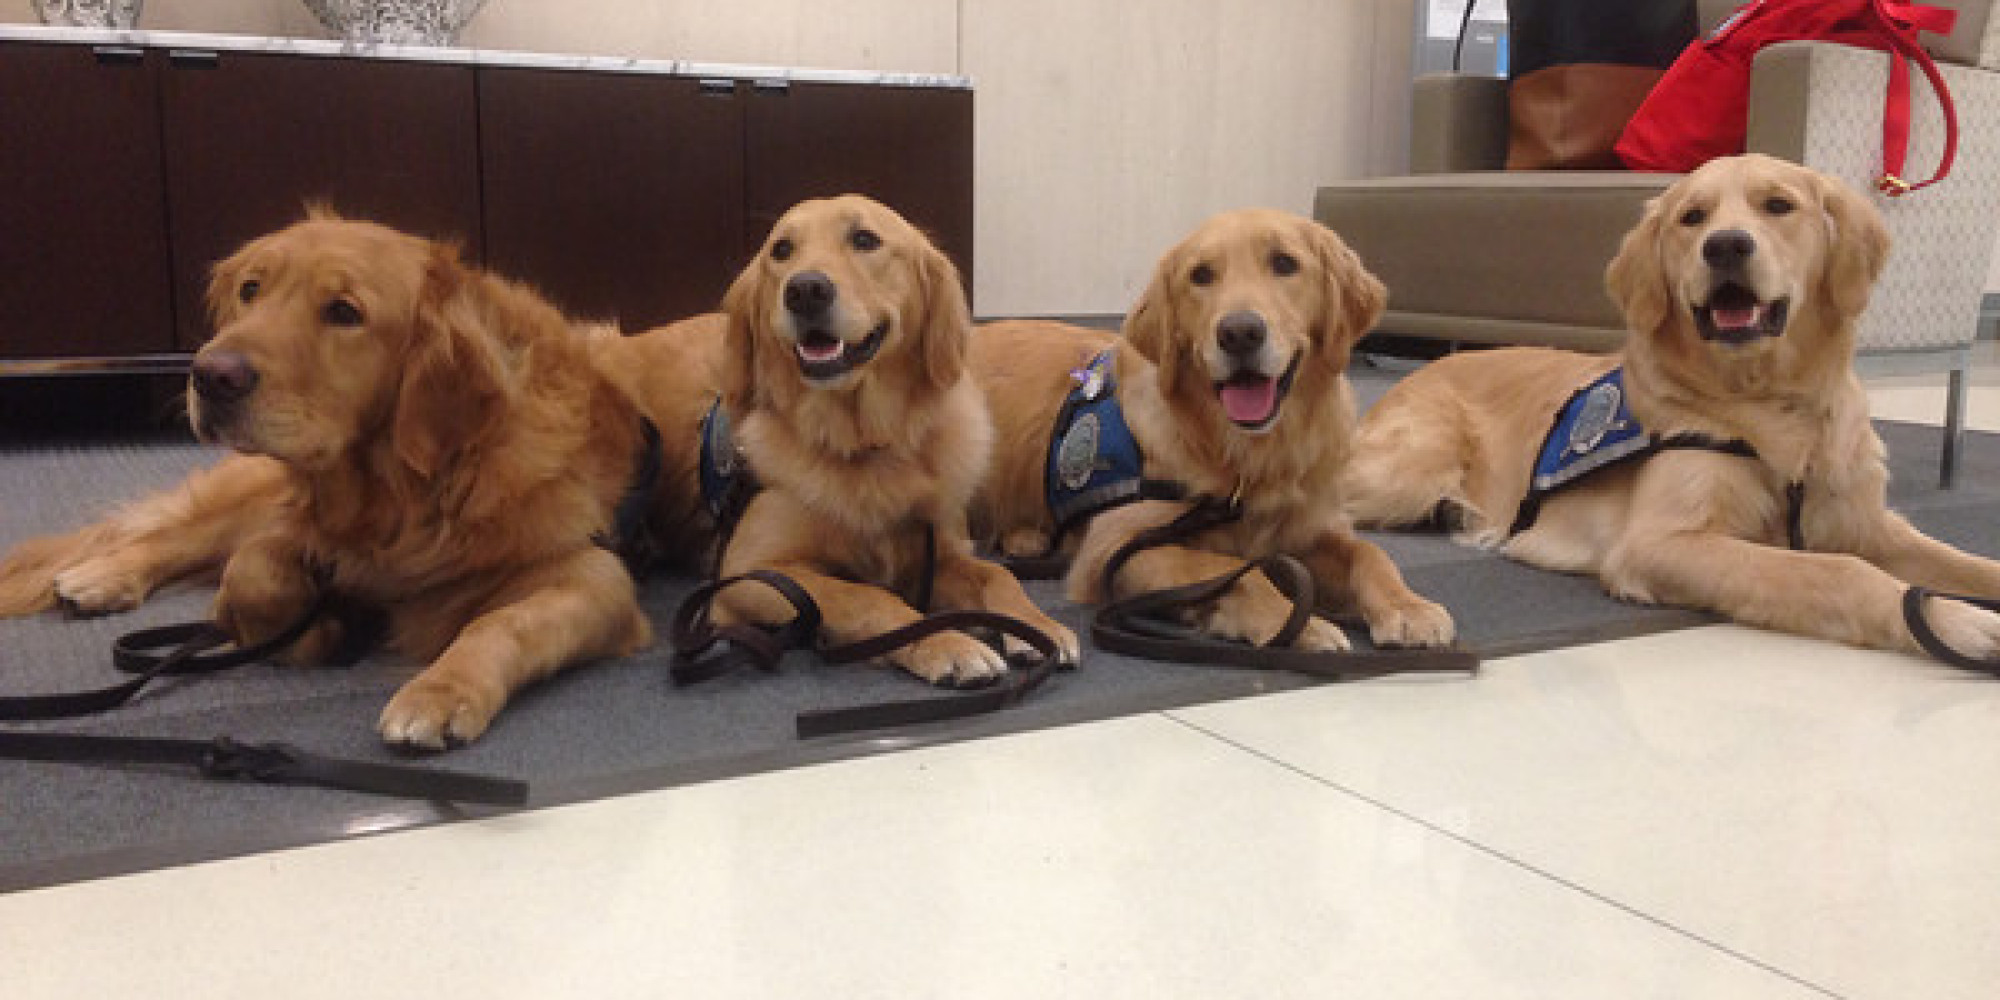 comfort dogs return to boston for cuddles ahead of 2014 marathon